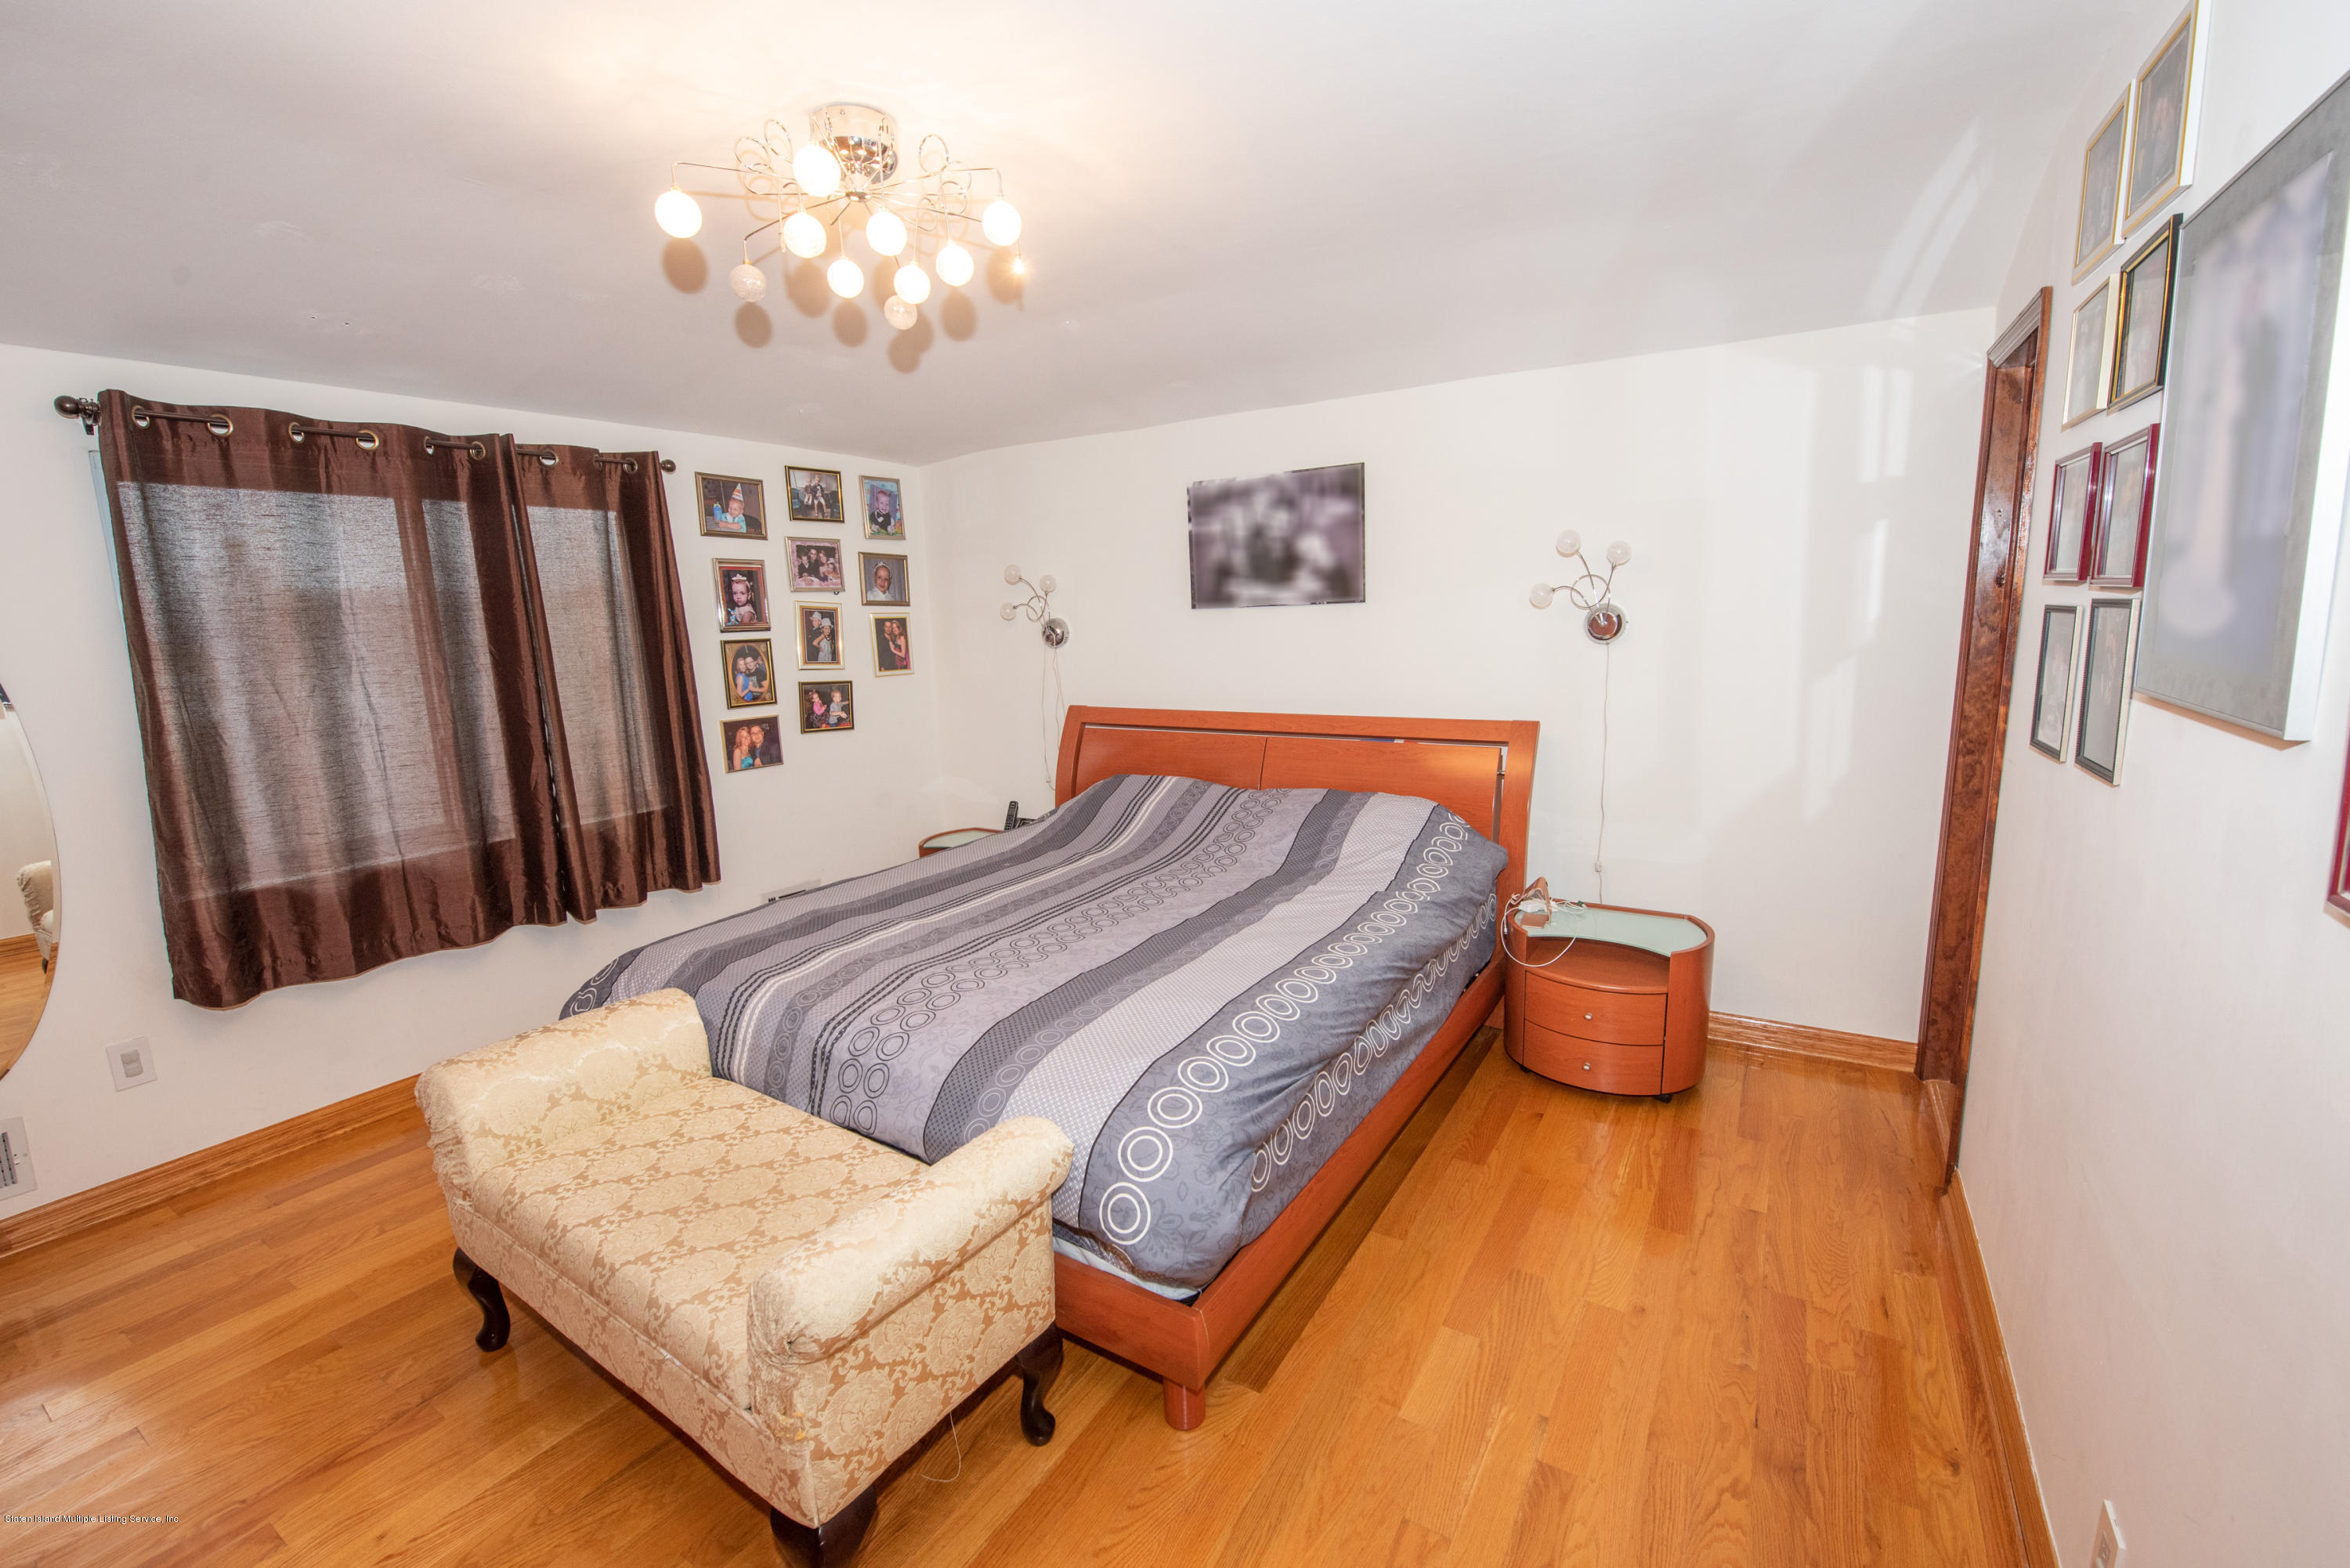 Single Family - Semi-Attached 76 Mcveigh Avenue  Staten Island, NY 10314, MLS-1133370-18